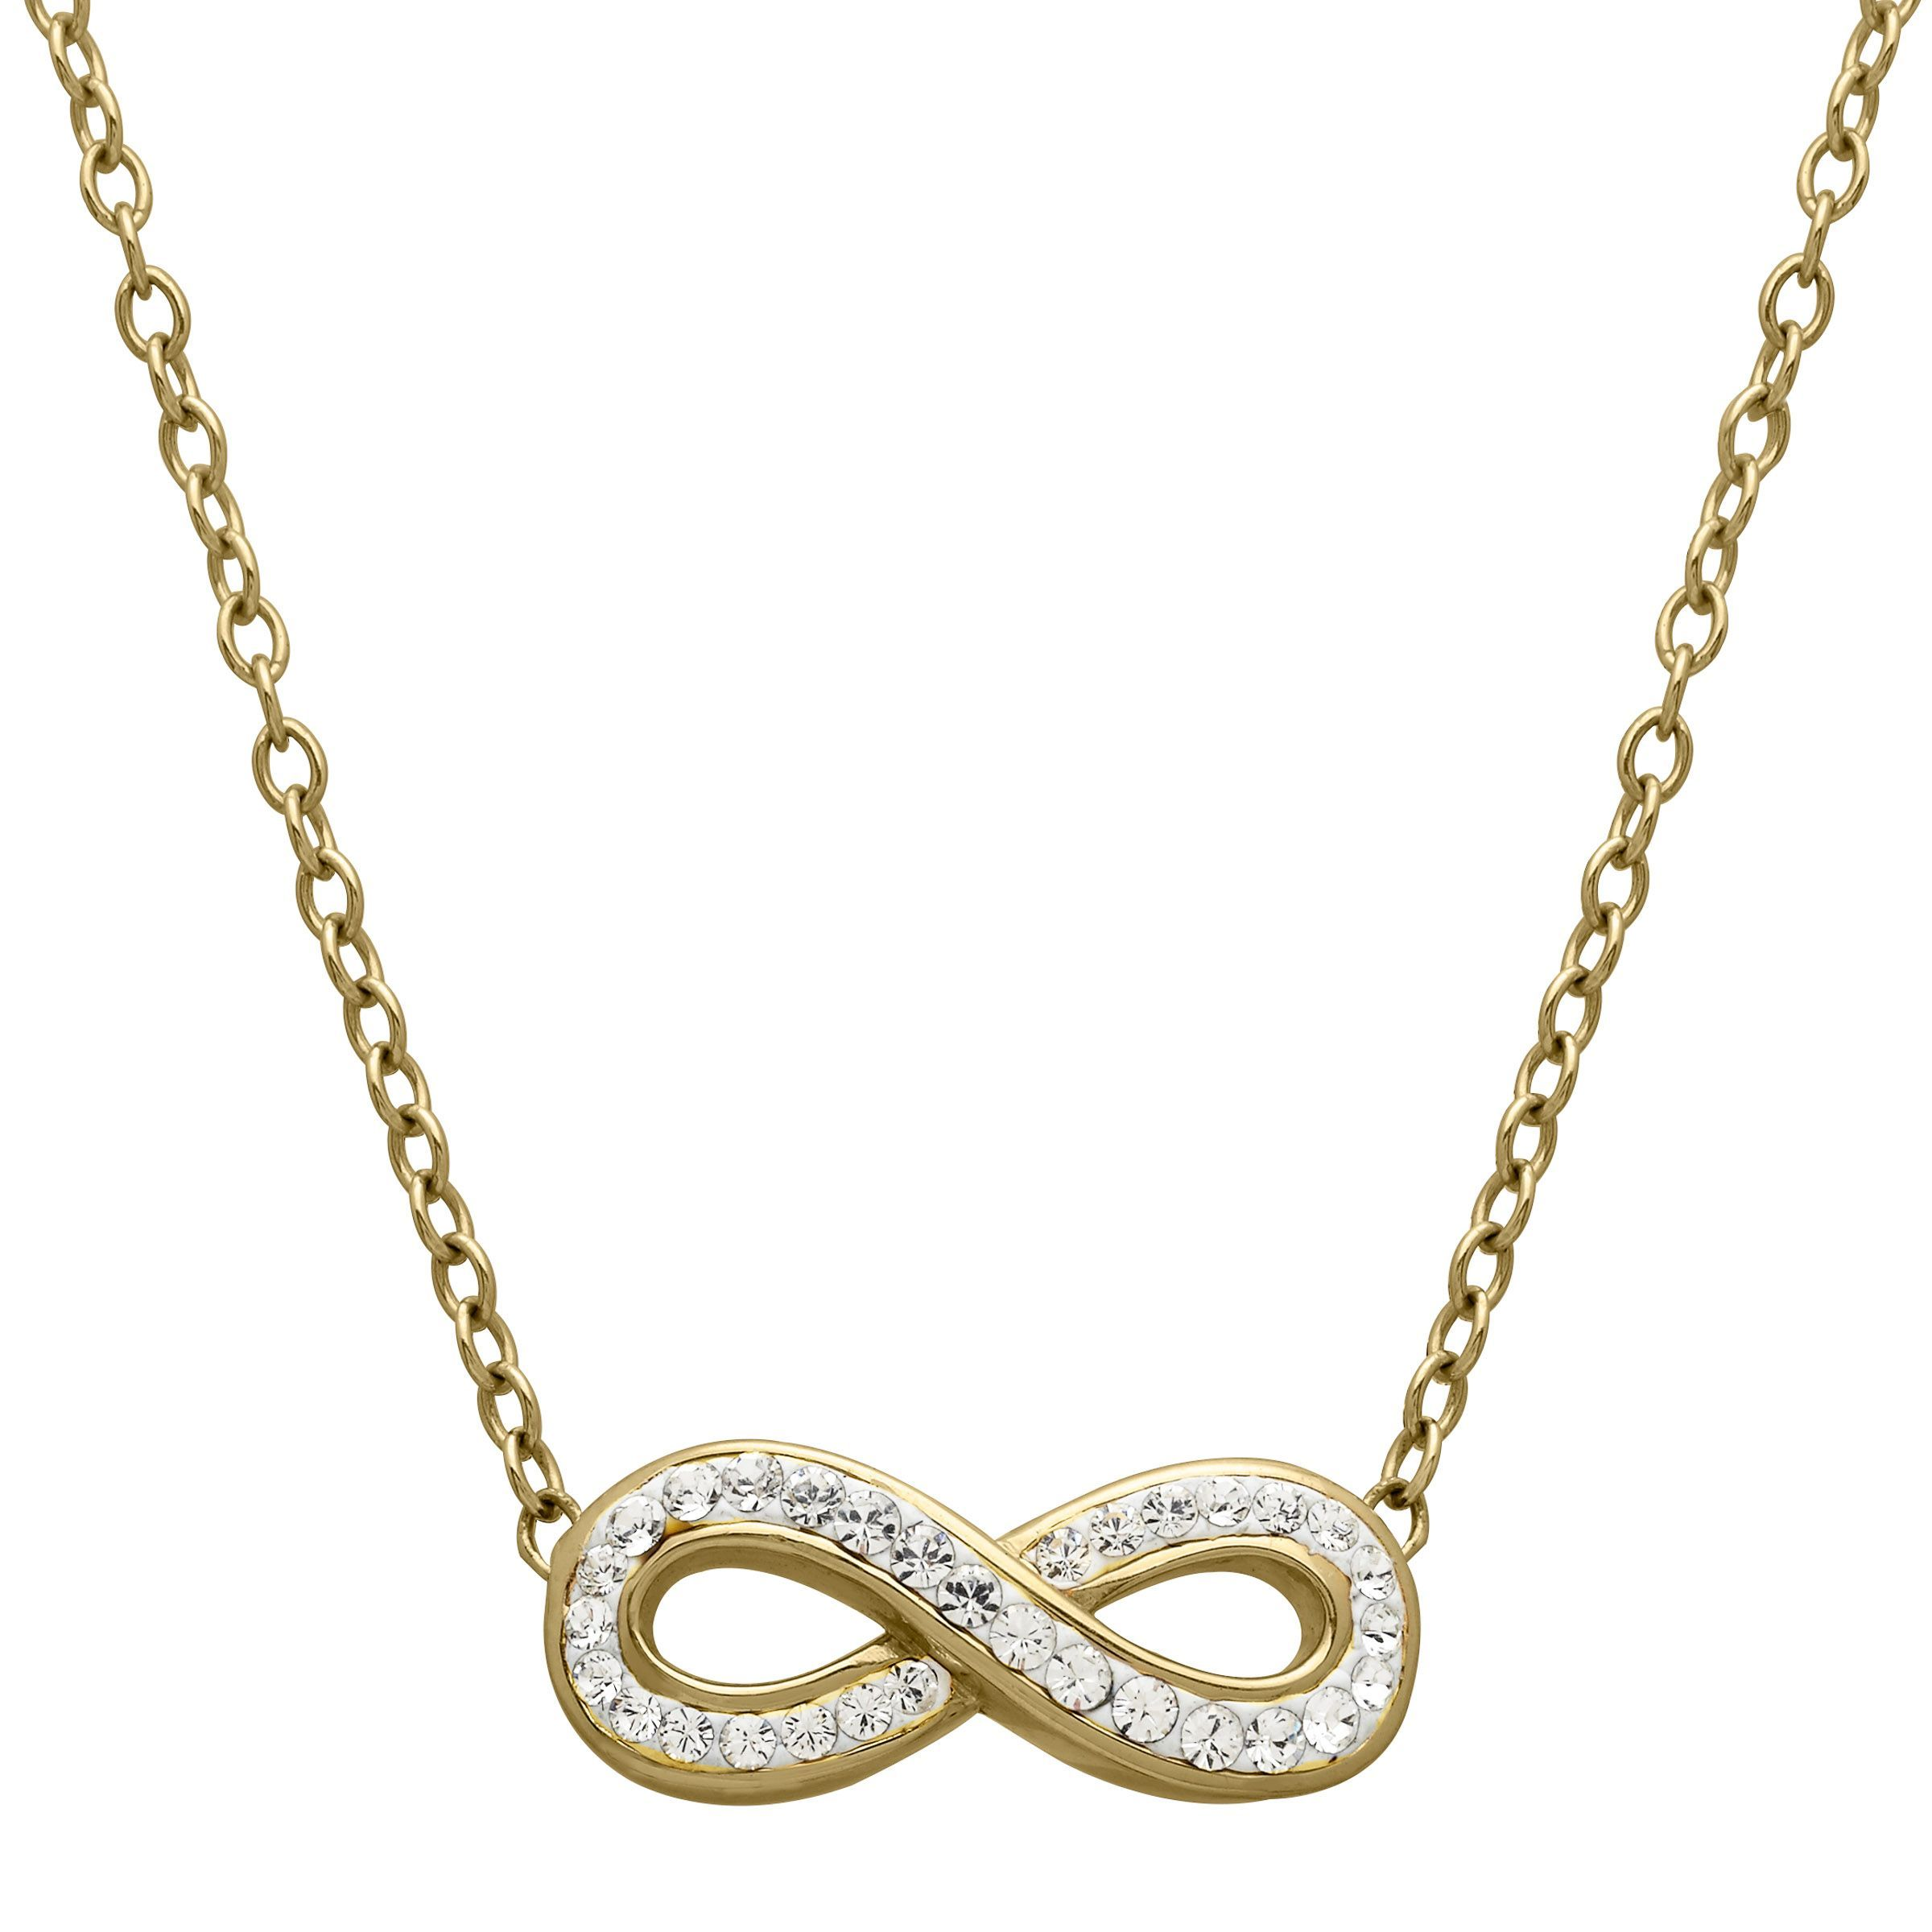 Details about Crystaluxe Infinity Necklace with Swarovski Crystals in 18K  Gold over Silver 8675b3a6f843